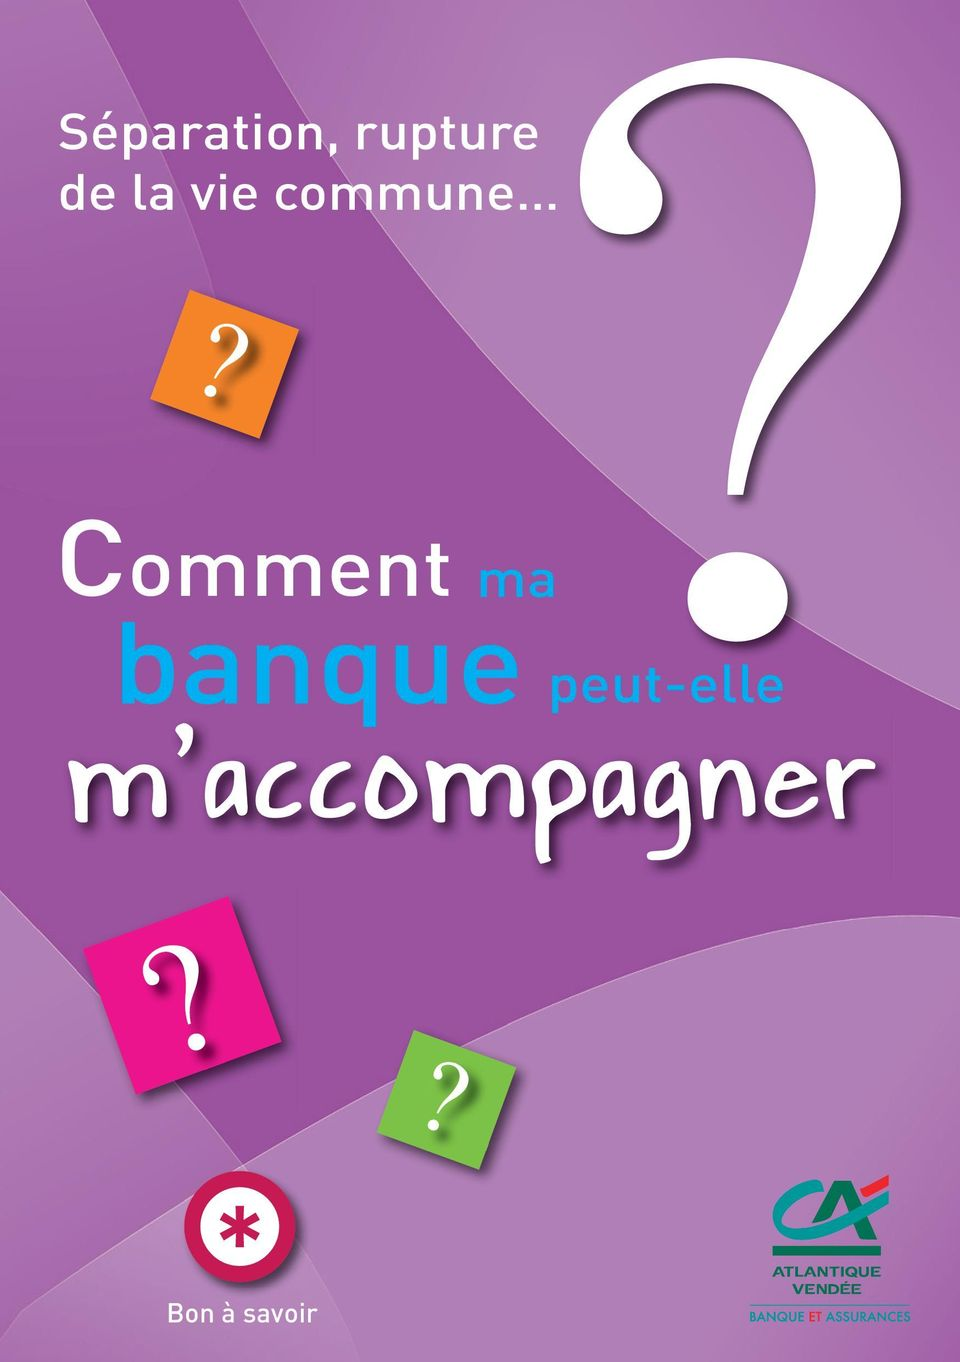 commune? Comment ma?